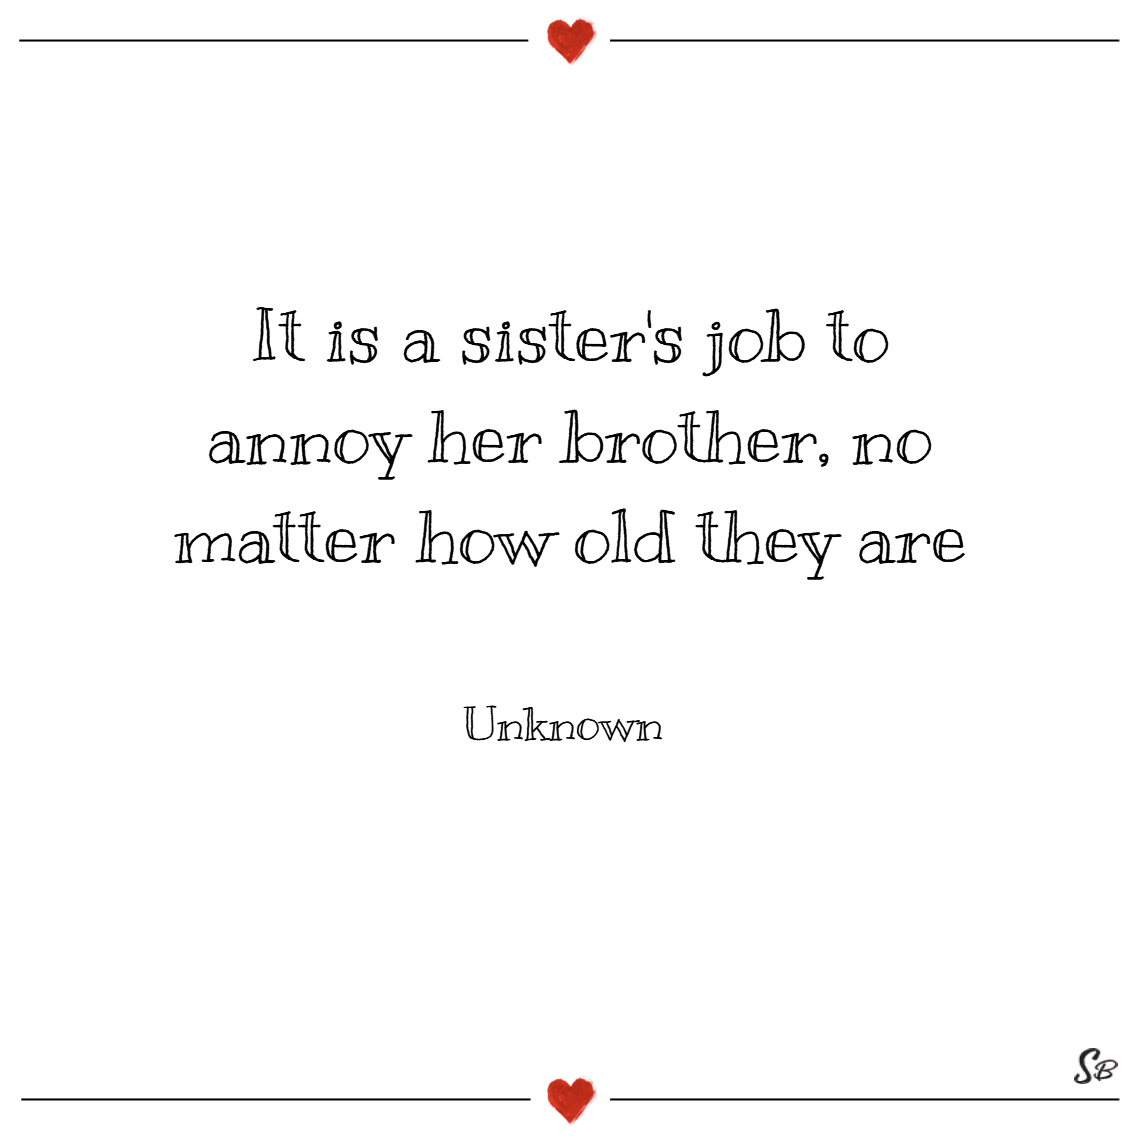 It is a sister's job to annoy her brother, no matter how old they are. – unknown (2)